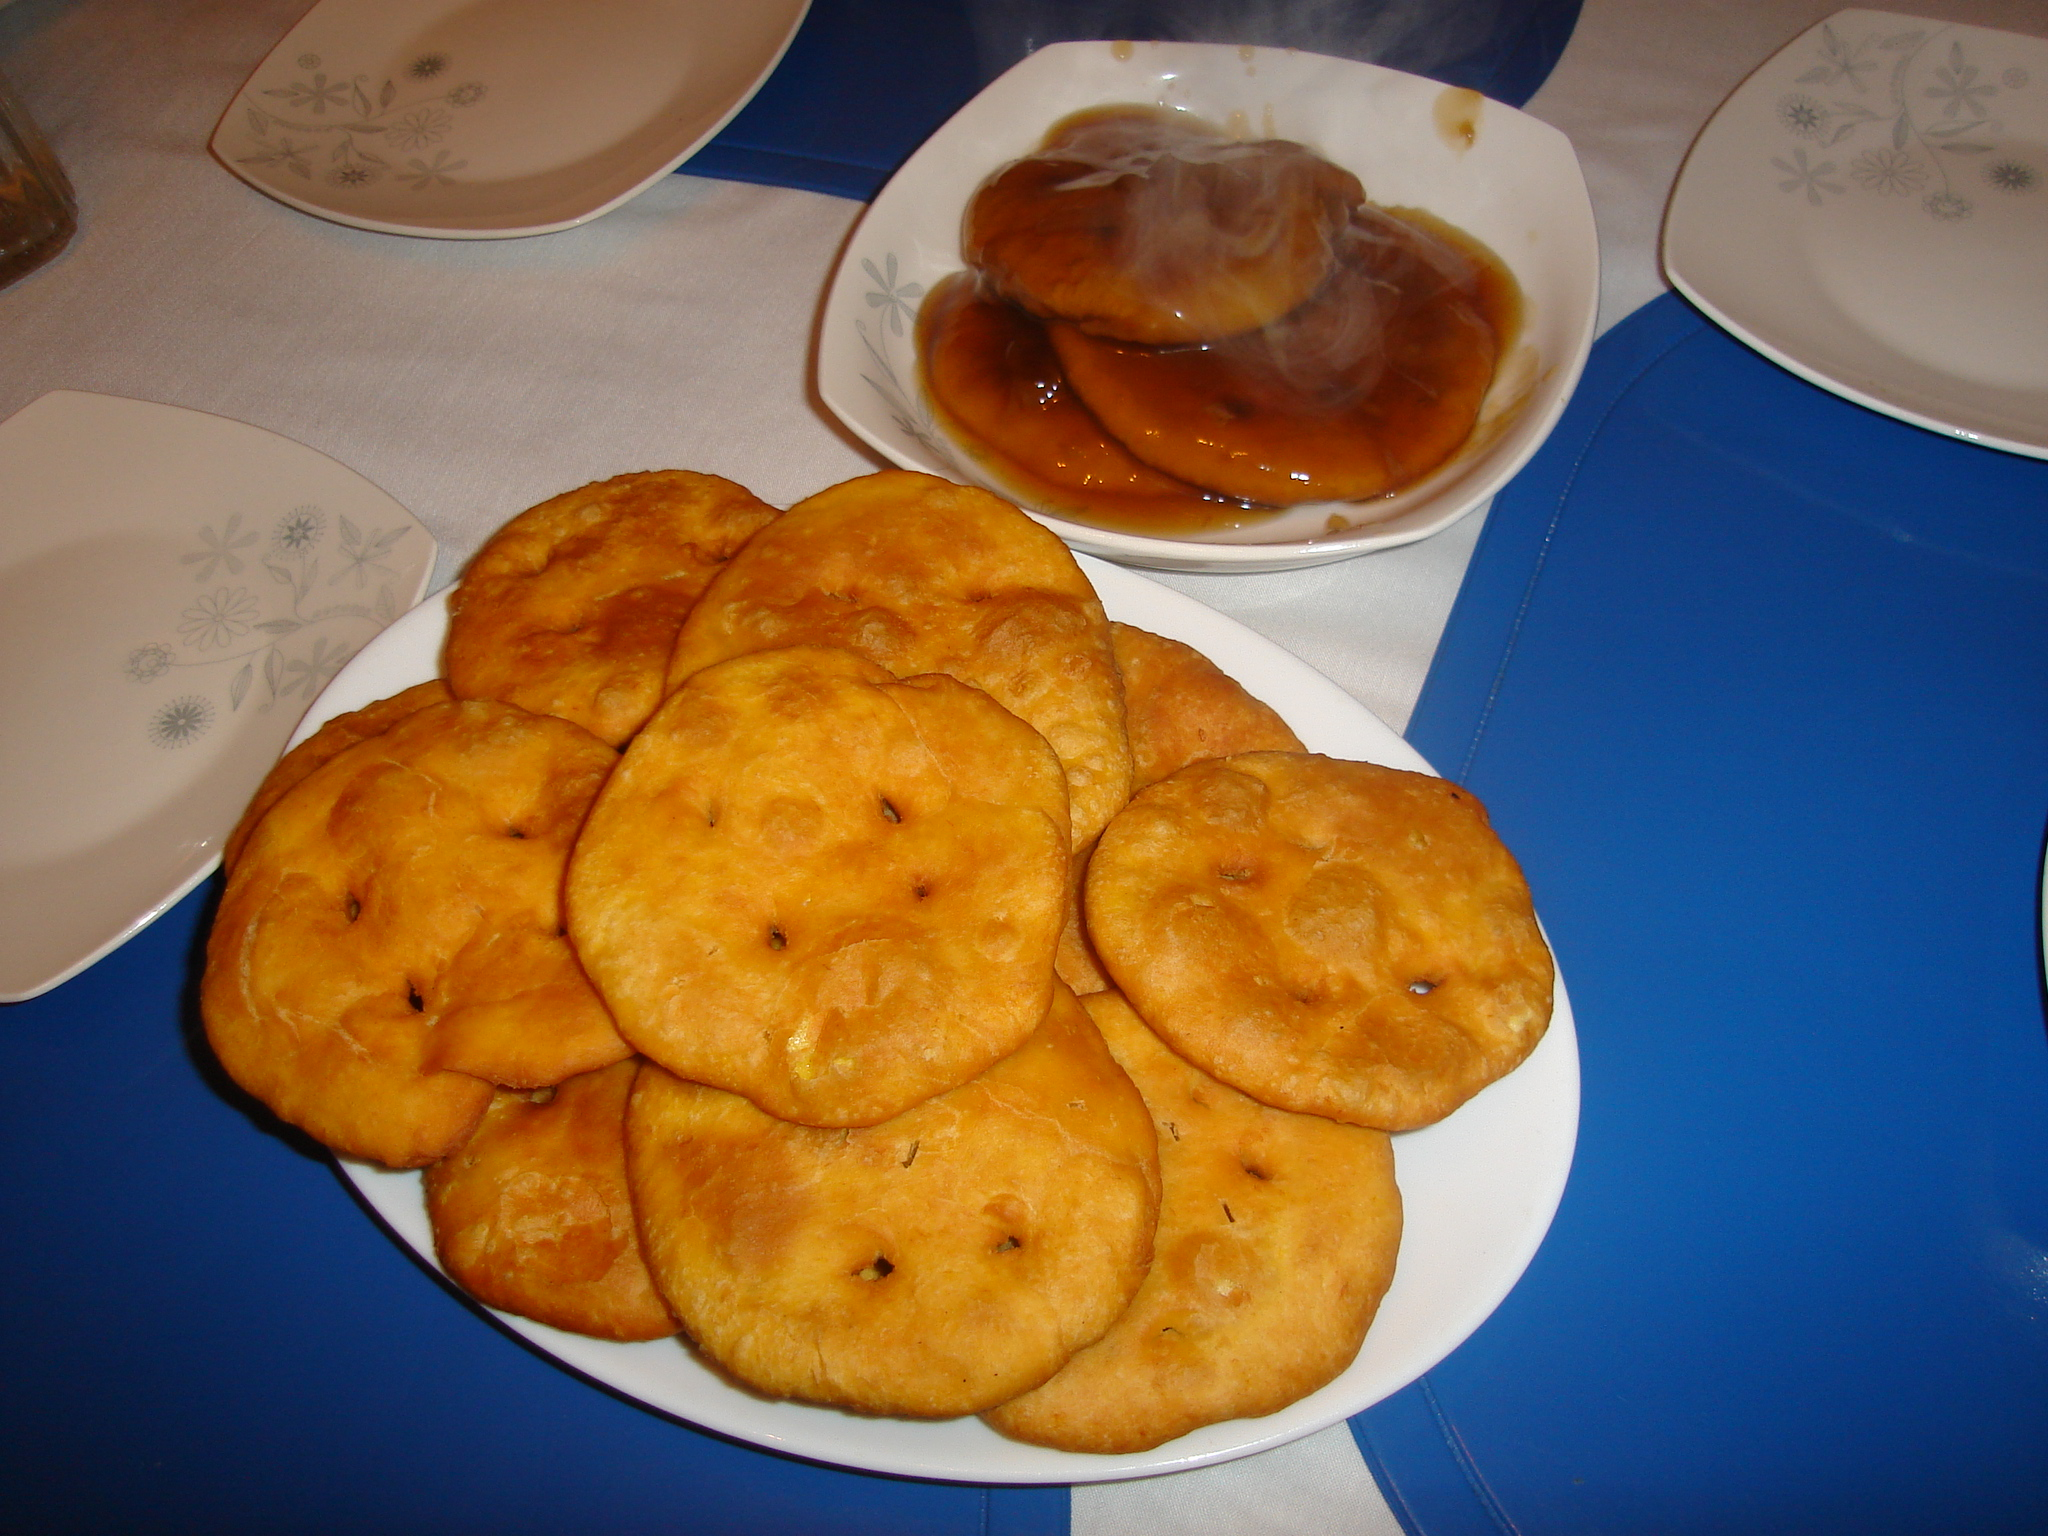 File:Sopaipillas chilenas.jpg - Wikipedia